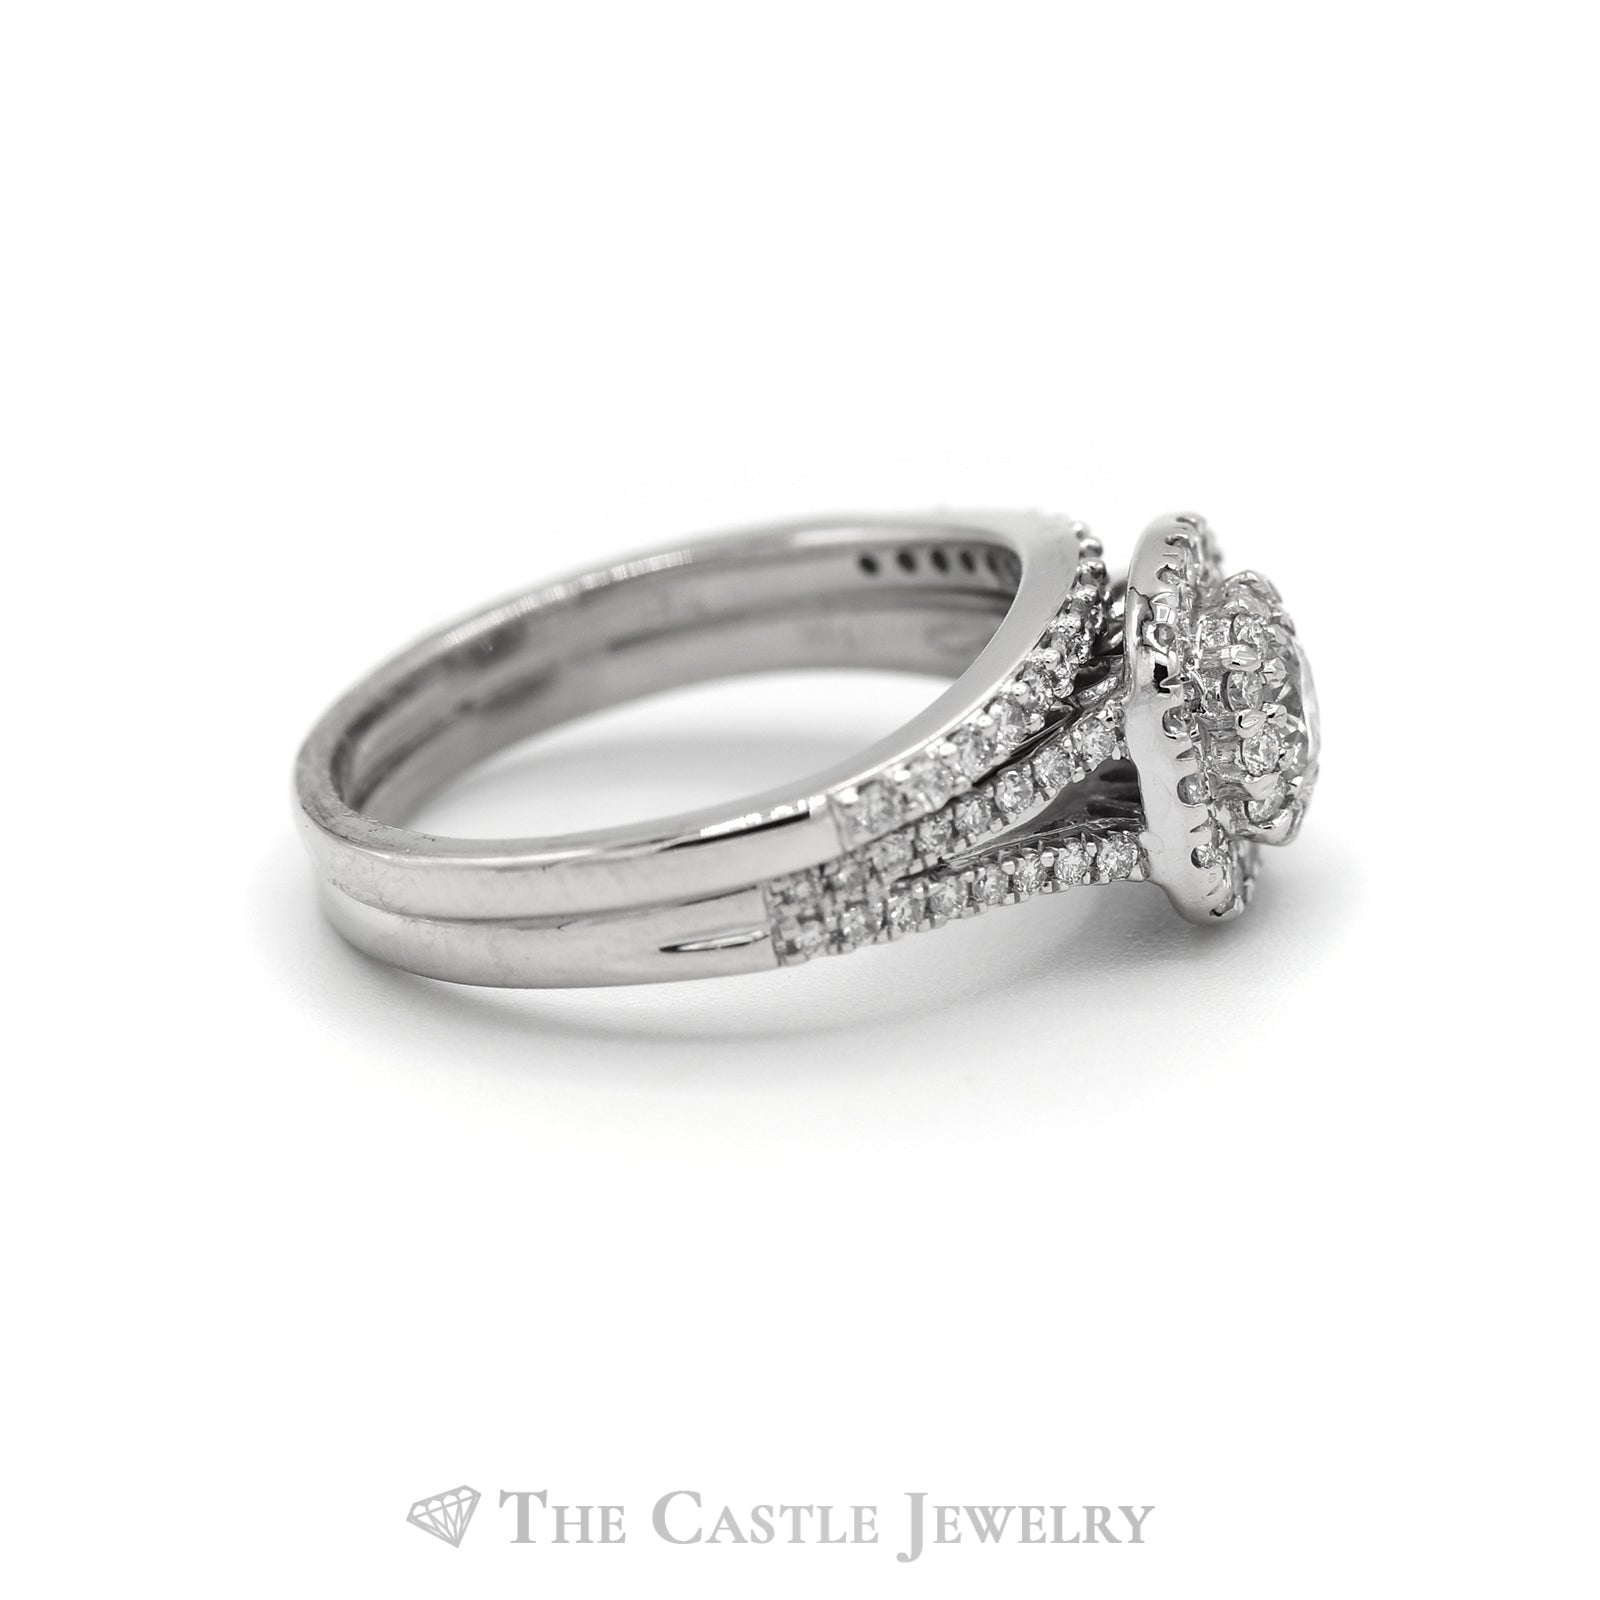 1cttw Diamond Halo Engagement Ring with Matching Curved Band in 14k White Gold-2